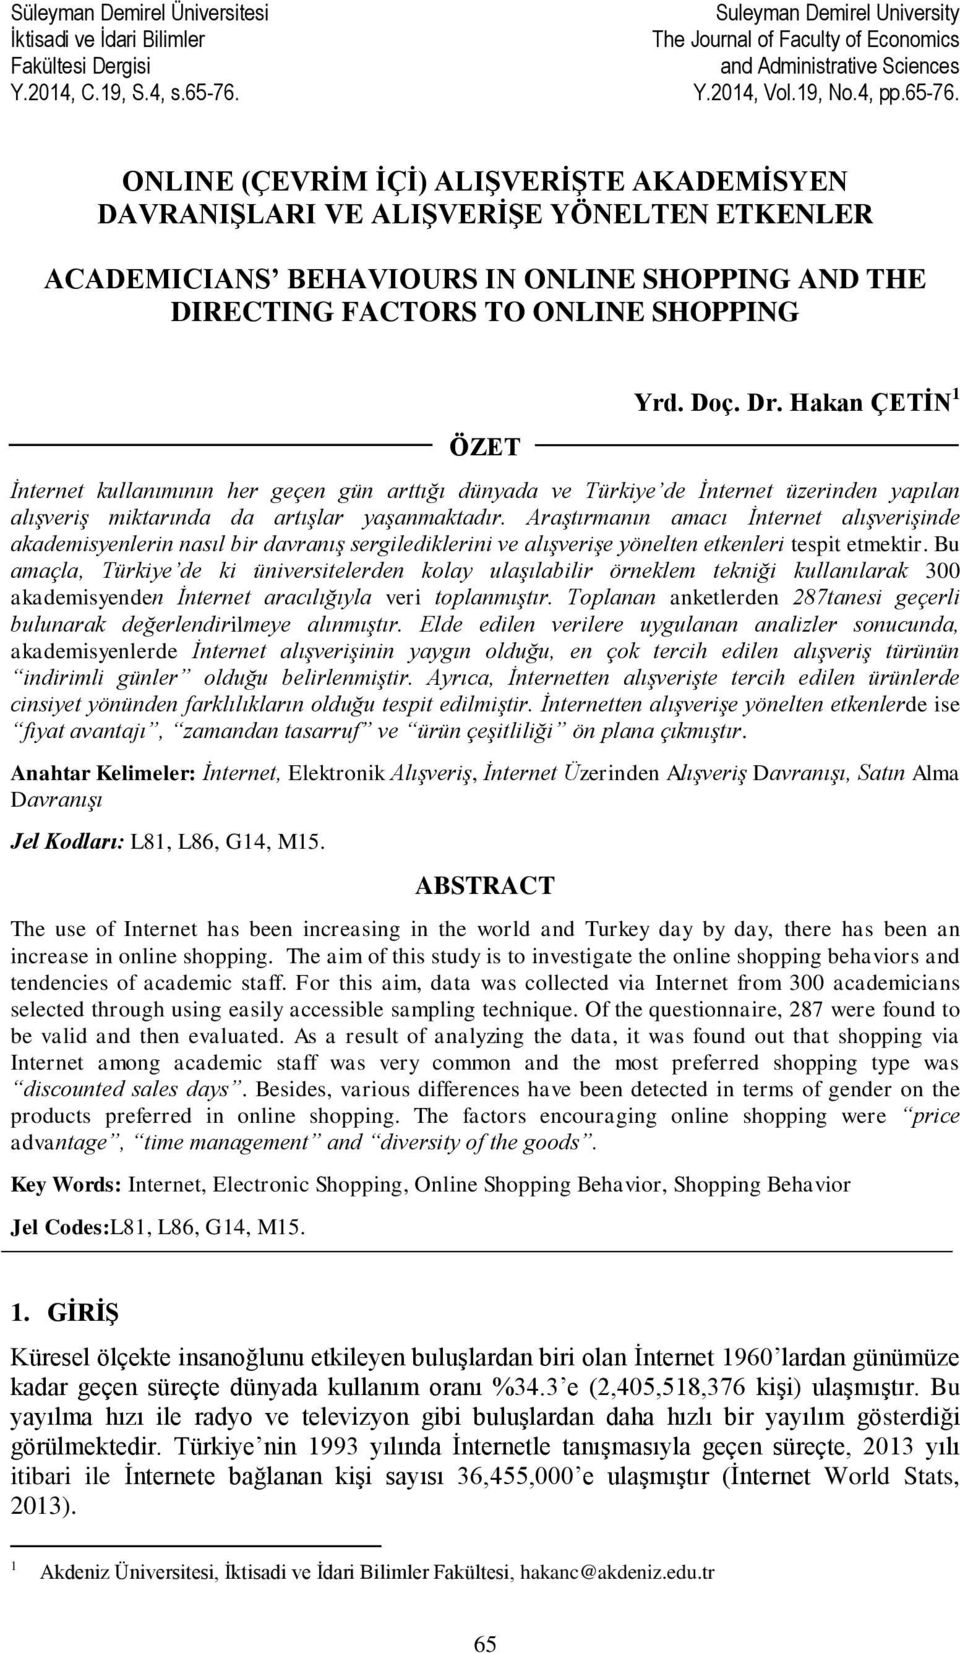 ONLINE (ÇEVRİM İÇİ) ALIŞVERİŞTE AKADEMİSYEN DAVRANIŞLARI VE ALIŞVERİŞE YÖNELTEN ETKENLER ACADEMICIANS BEHAVIOURS IN ONLINE SHOPPING AND THE DIRECTING FACTORS TO ONLINE SHOPPING ÖZET Yrd. Doç. Dr.